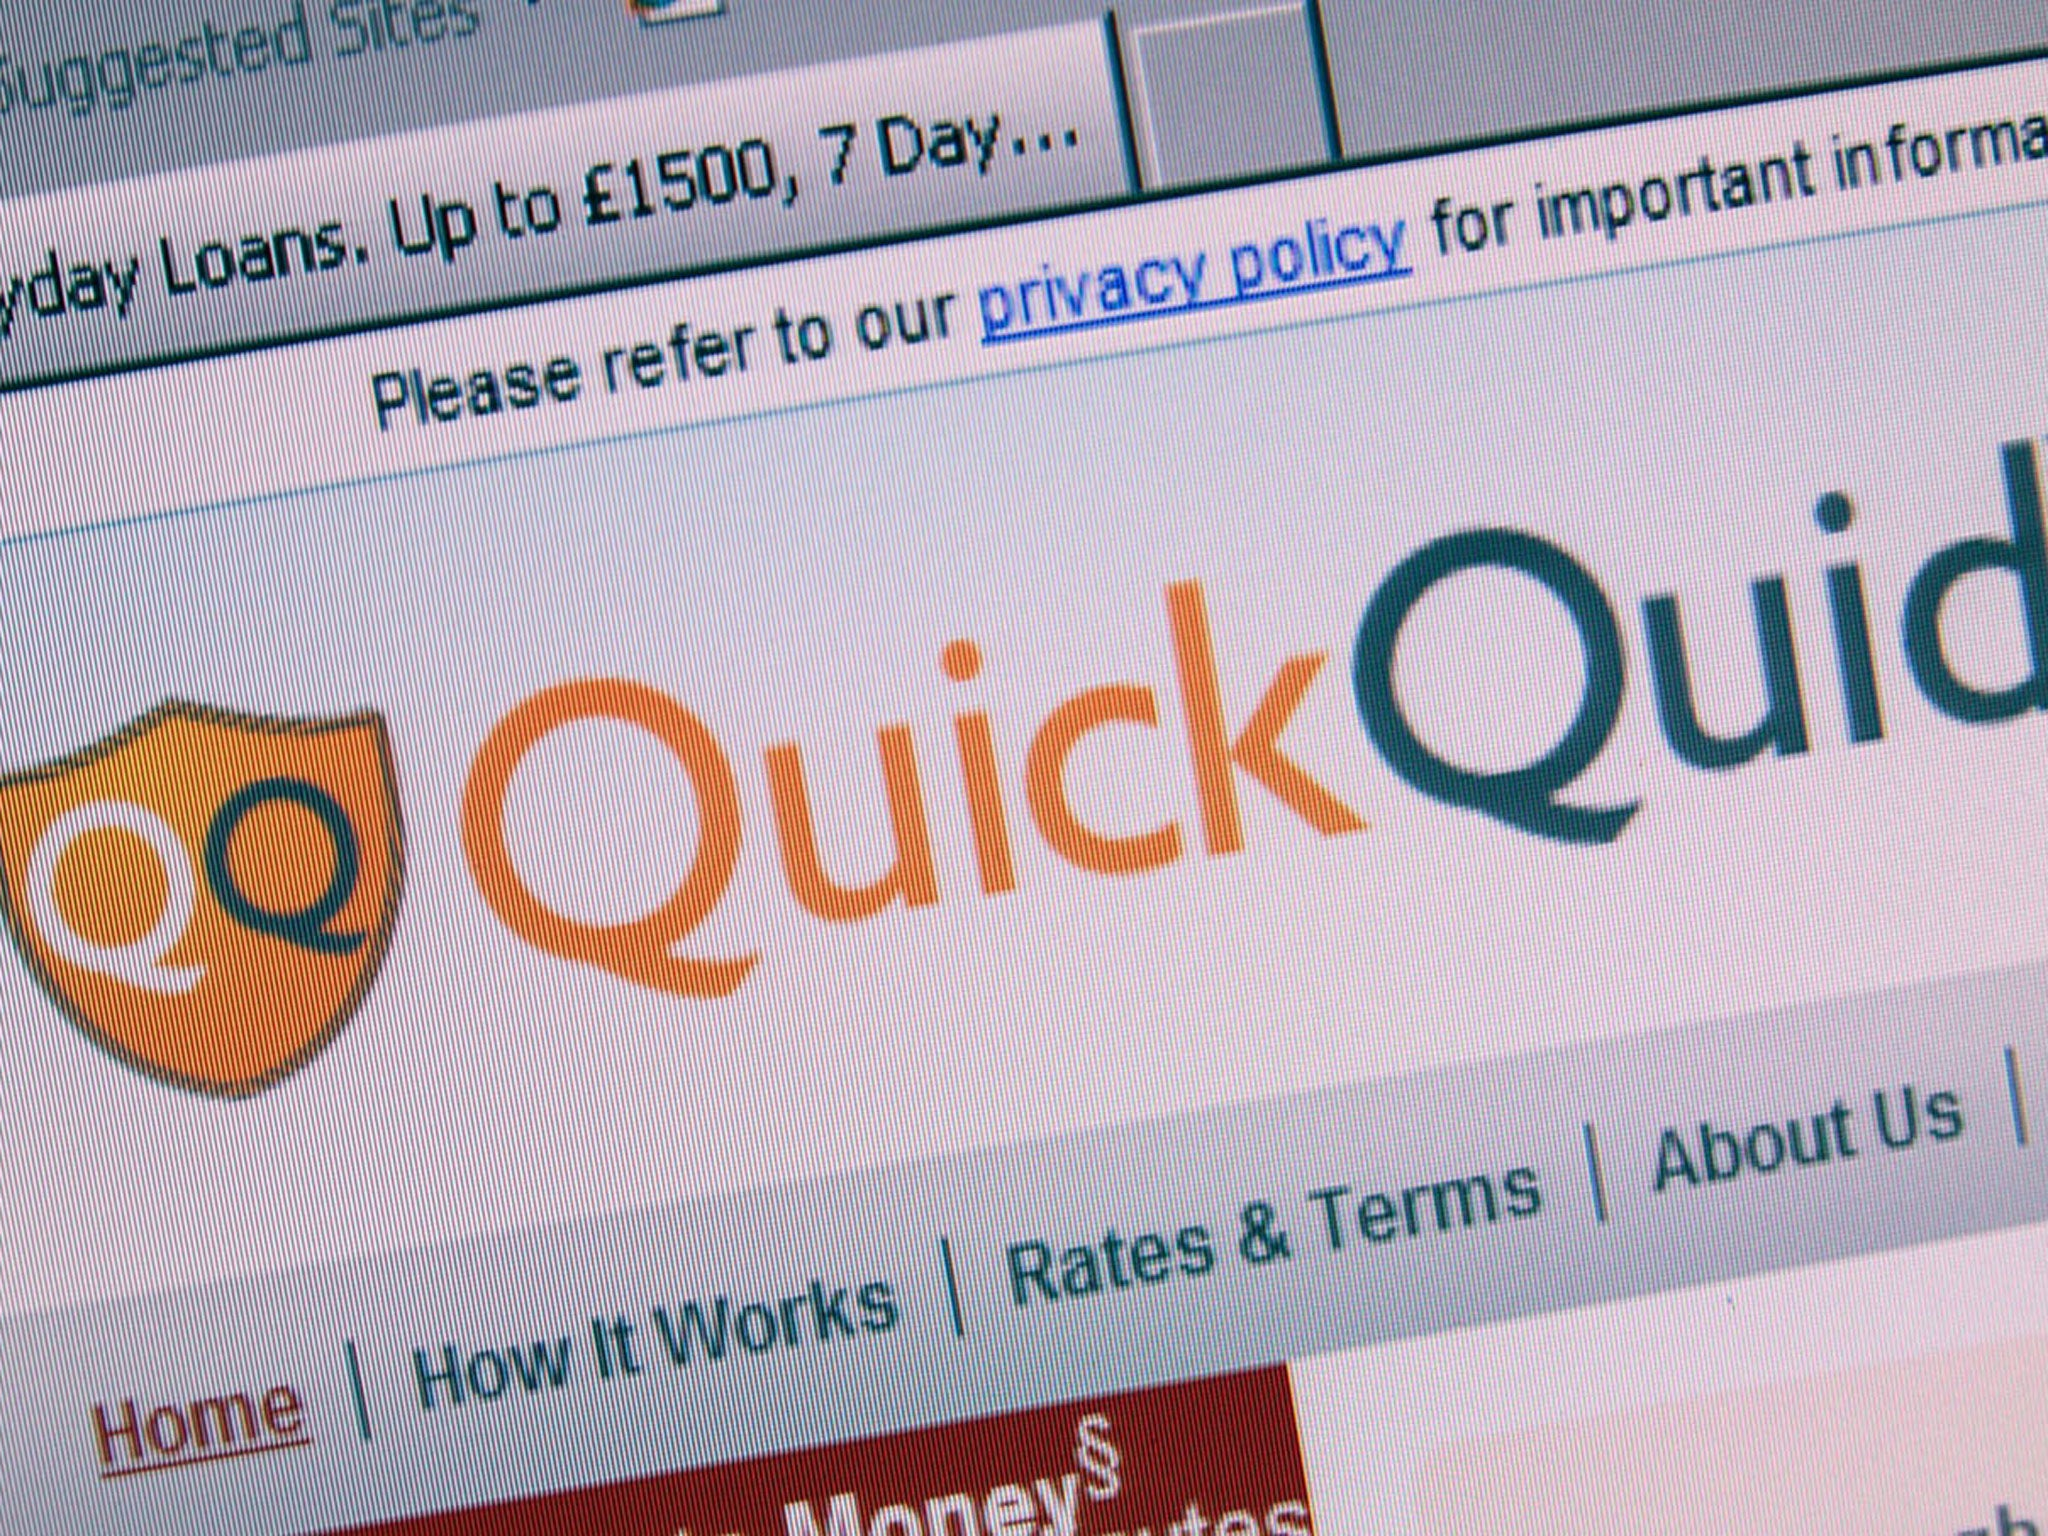 QuickQuid 'on verge of collapse' as payday lender lines up administrators